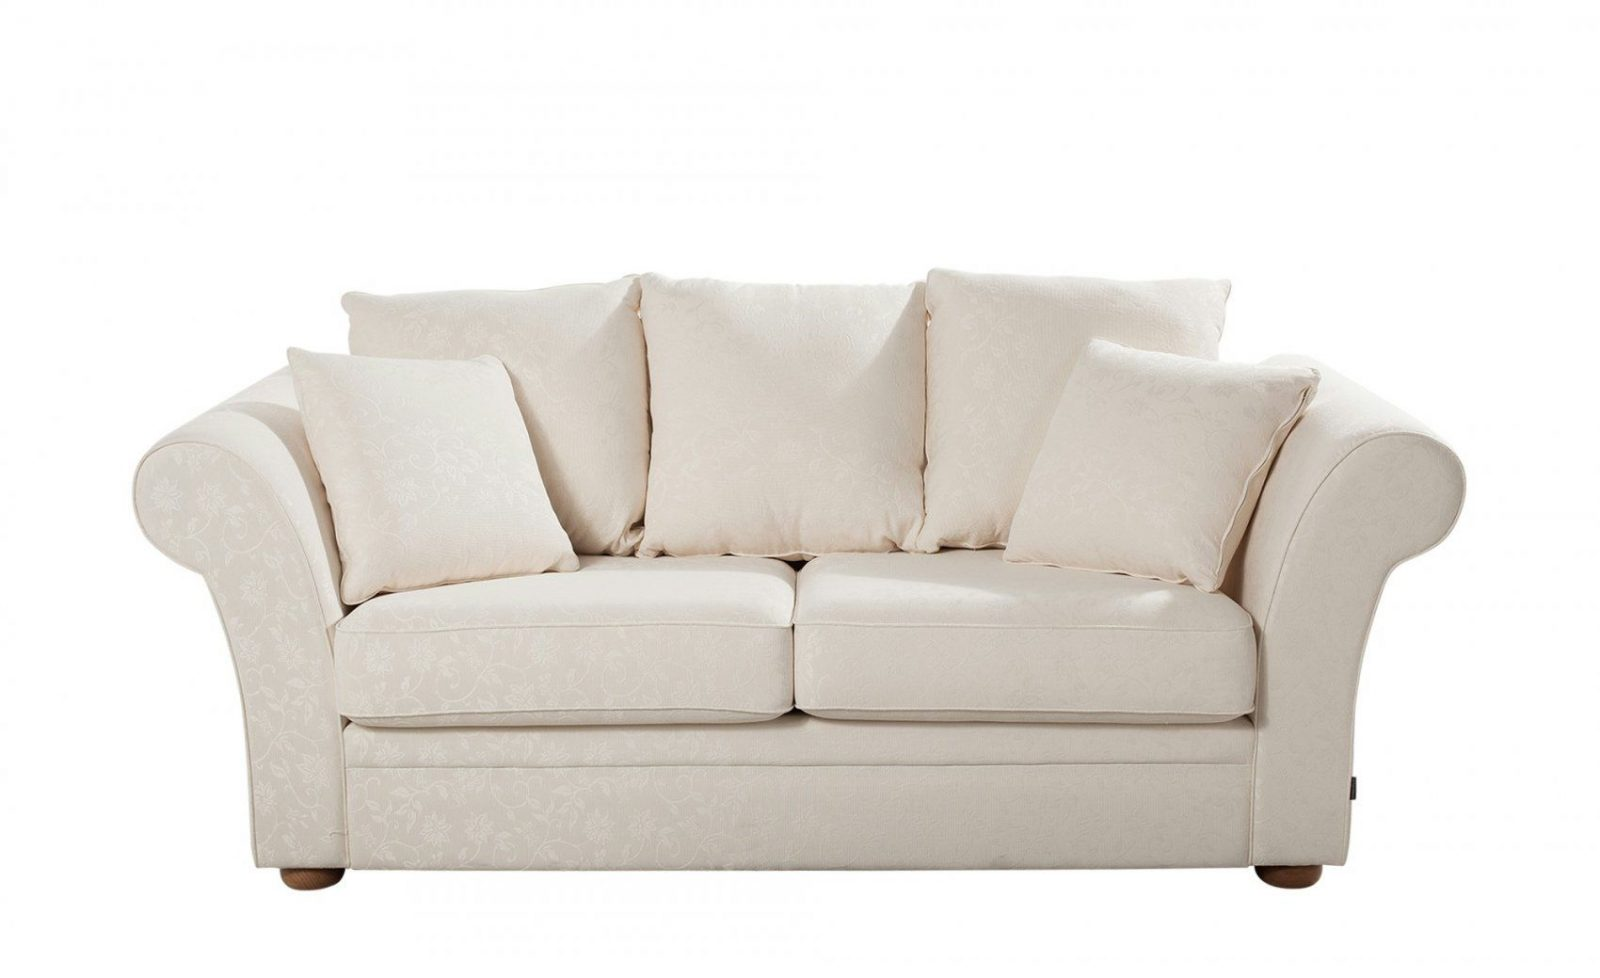 Sofa Landhausstil Landhaus Couch Naturloft Mit Bettfunktion Gunstig von Landhaus Sofa Mit Schlaffunktion Photo